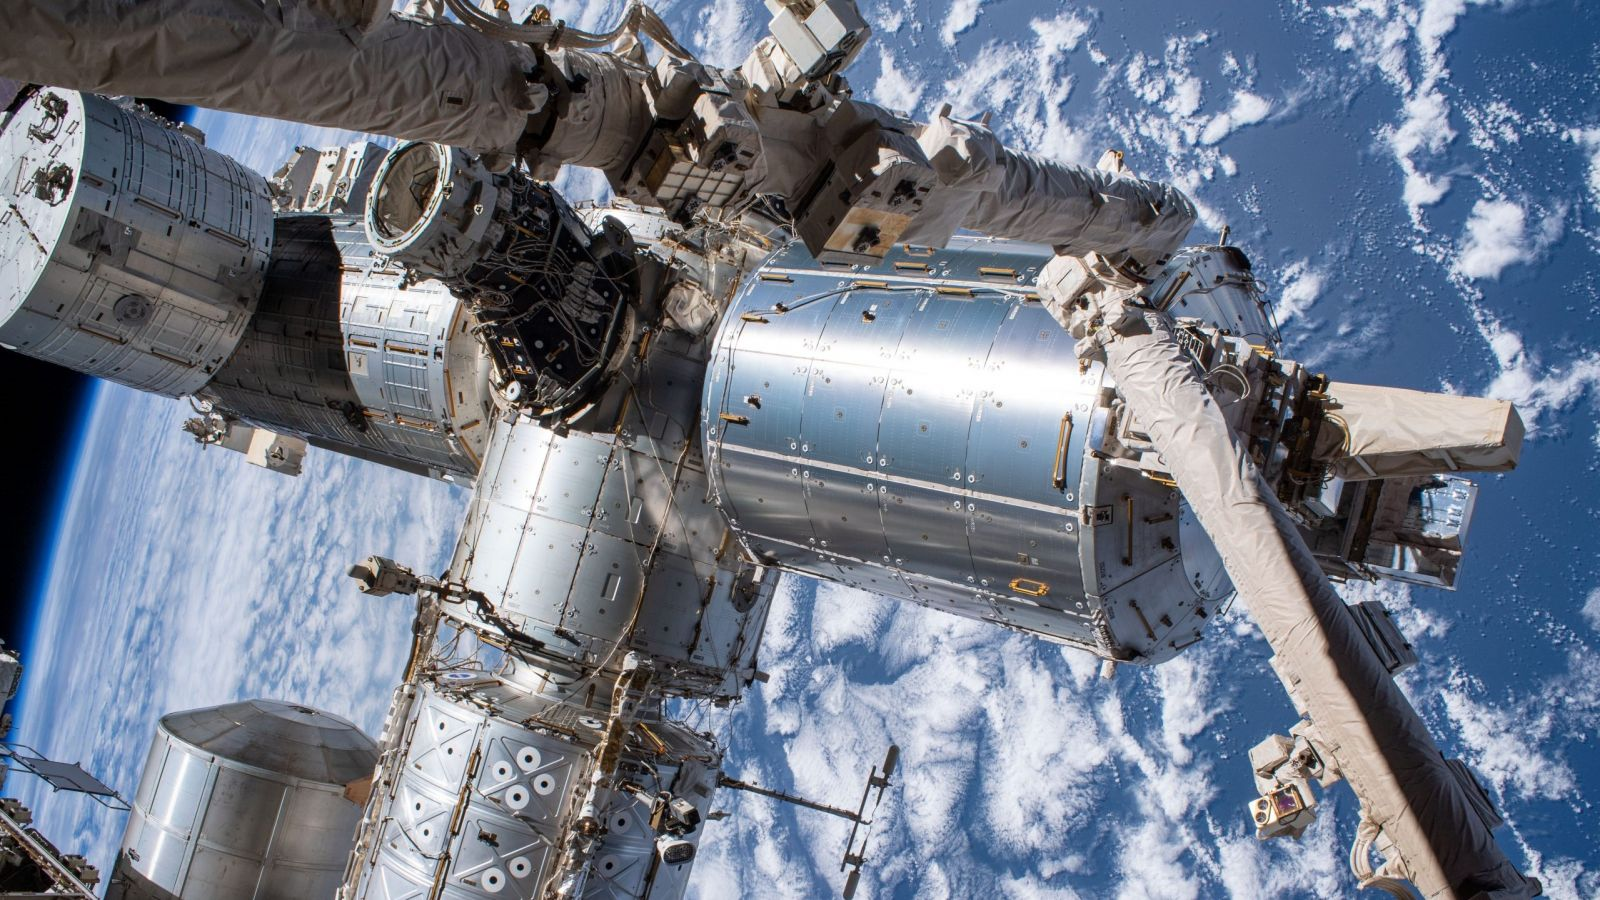 A view of the front of the International Space Station. The Bartolomeo platform, which was not yet installed when this photo was taken, is located on the forward side of the Columbus module. Credit: NASA